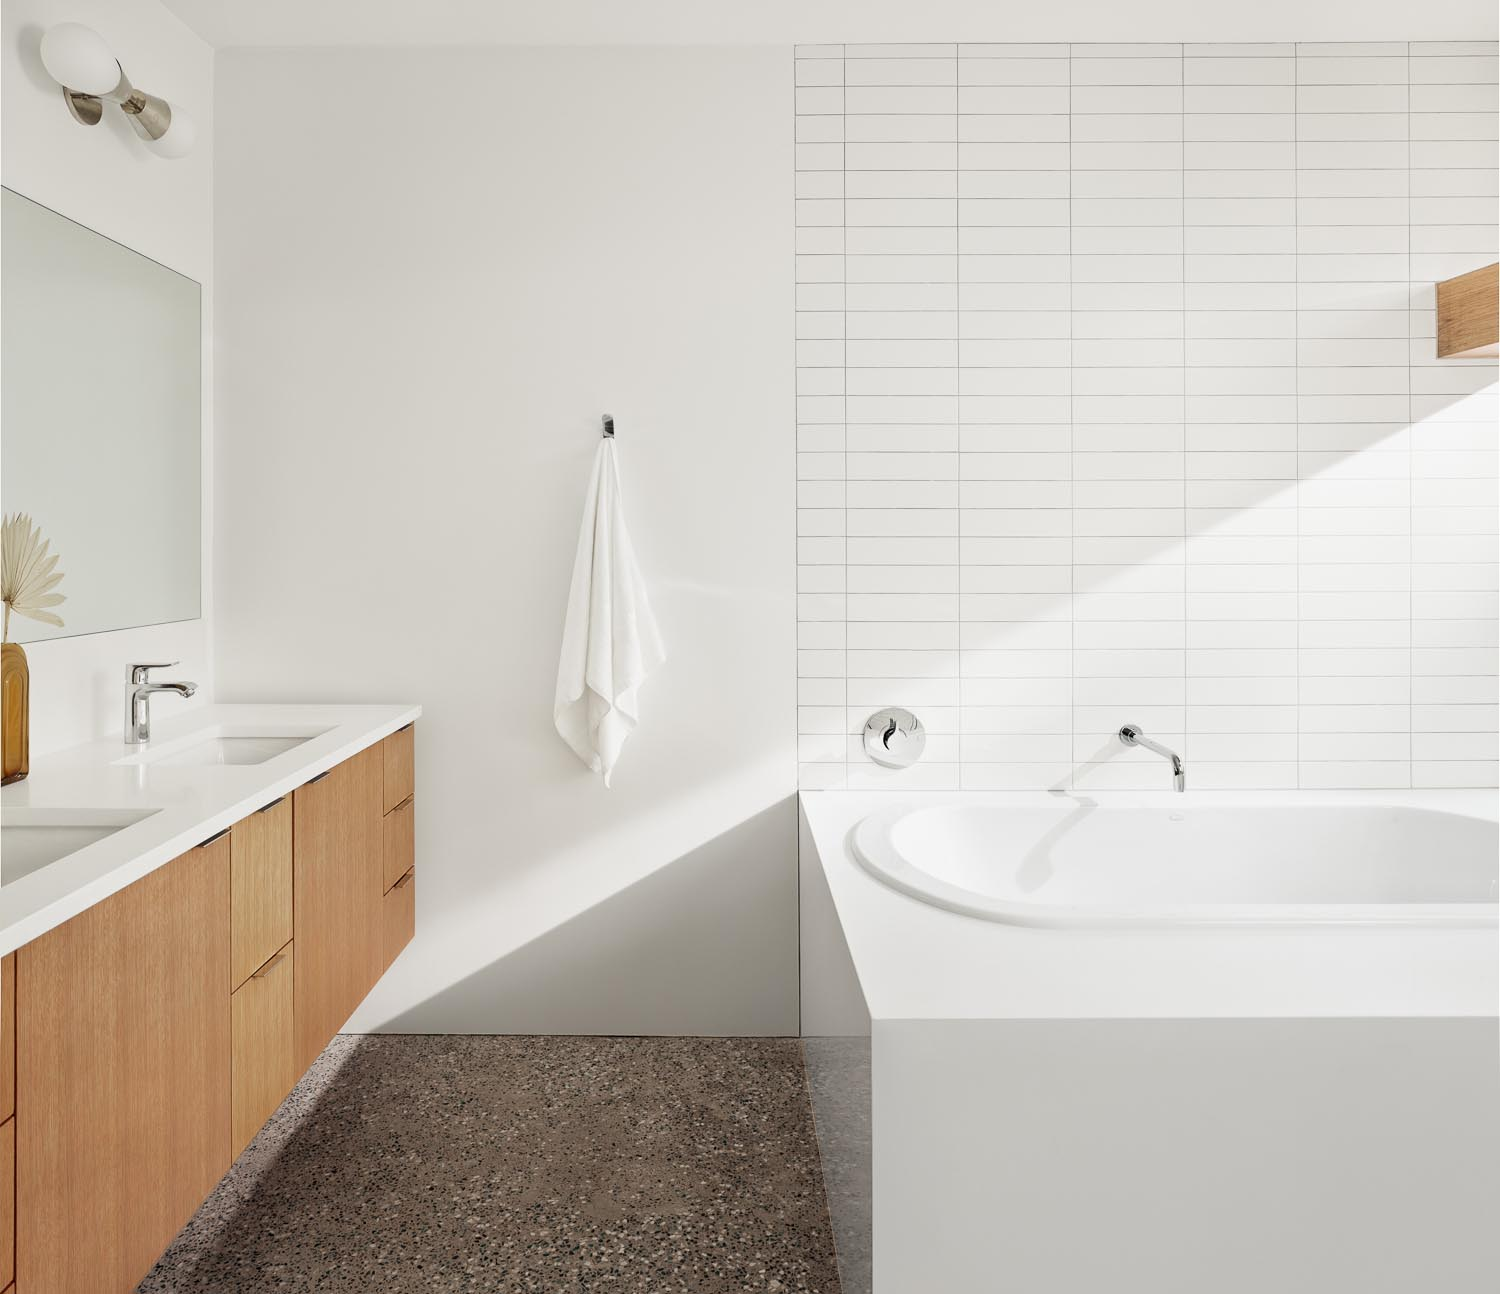 In this modern bathroom, there's a floating wood vanity, a built-in bathtub, and walls lined with white rectangular tiles.